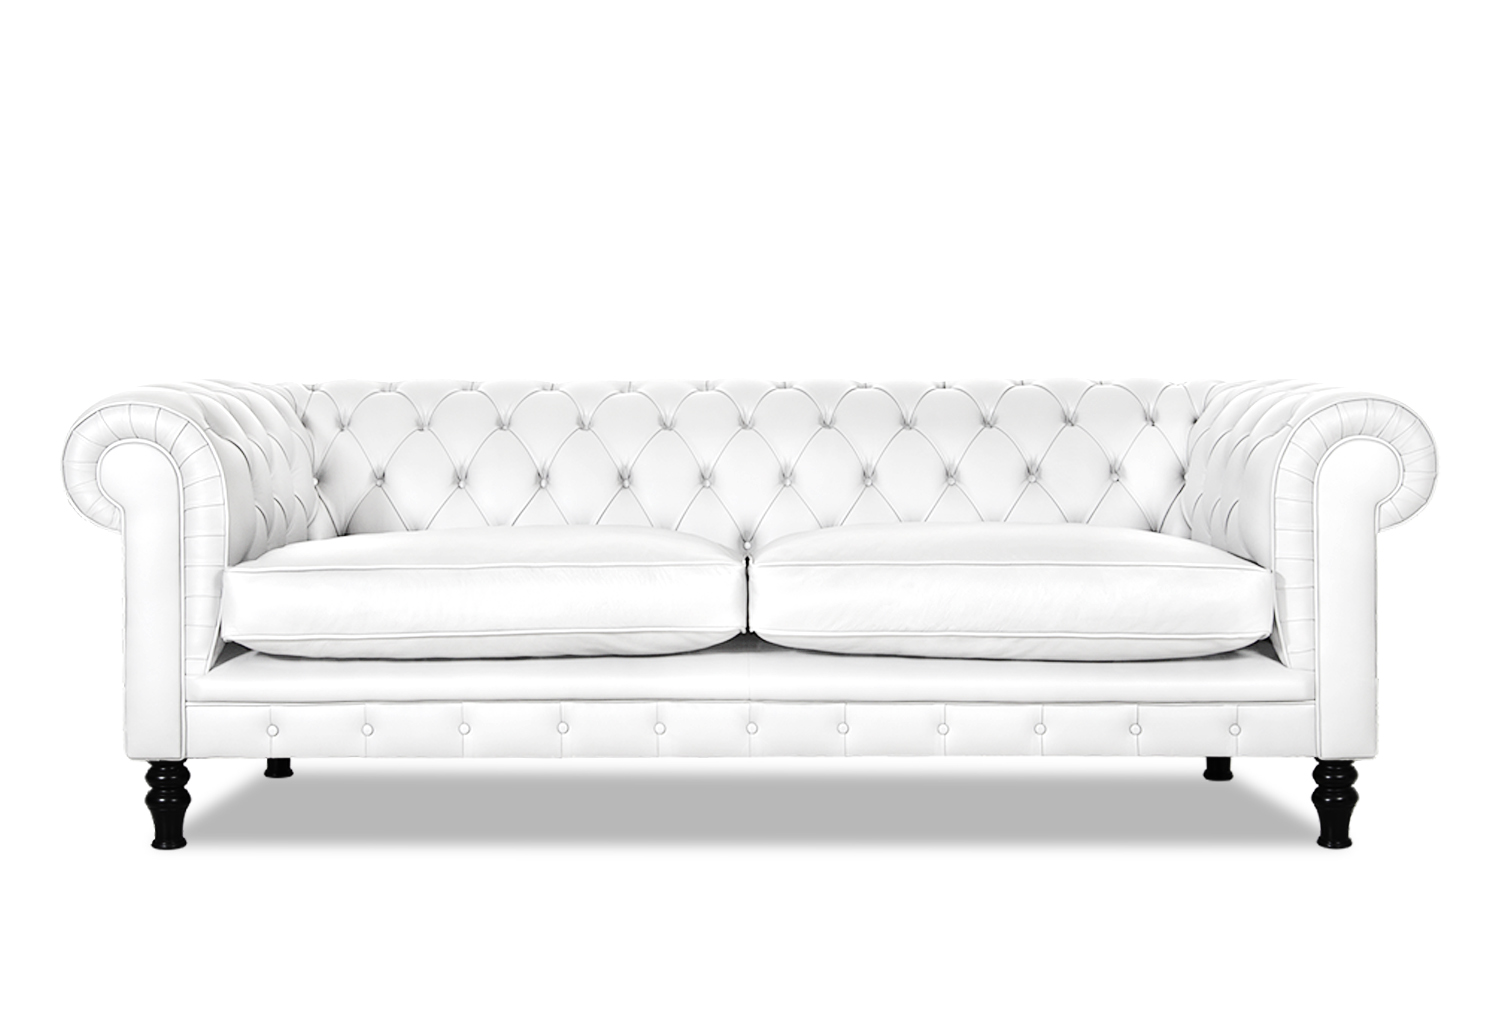 Ledersofa weiß  Chesterfield Sofa weiss | Weisse Couch Countess aus England